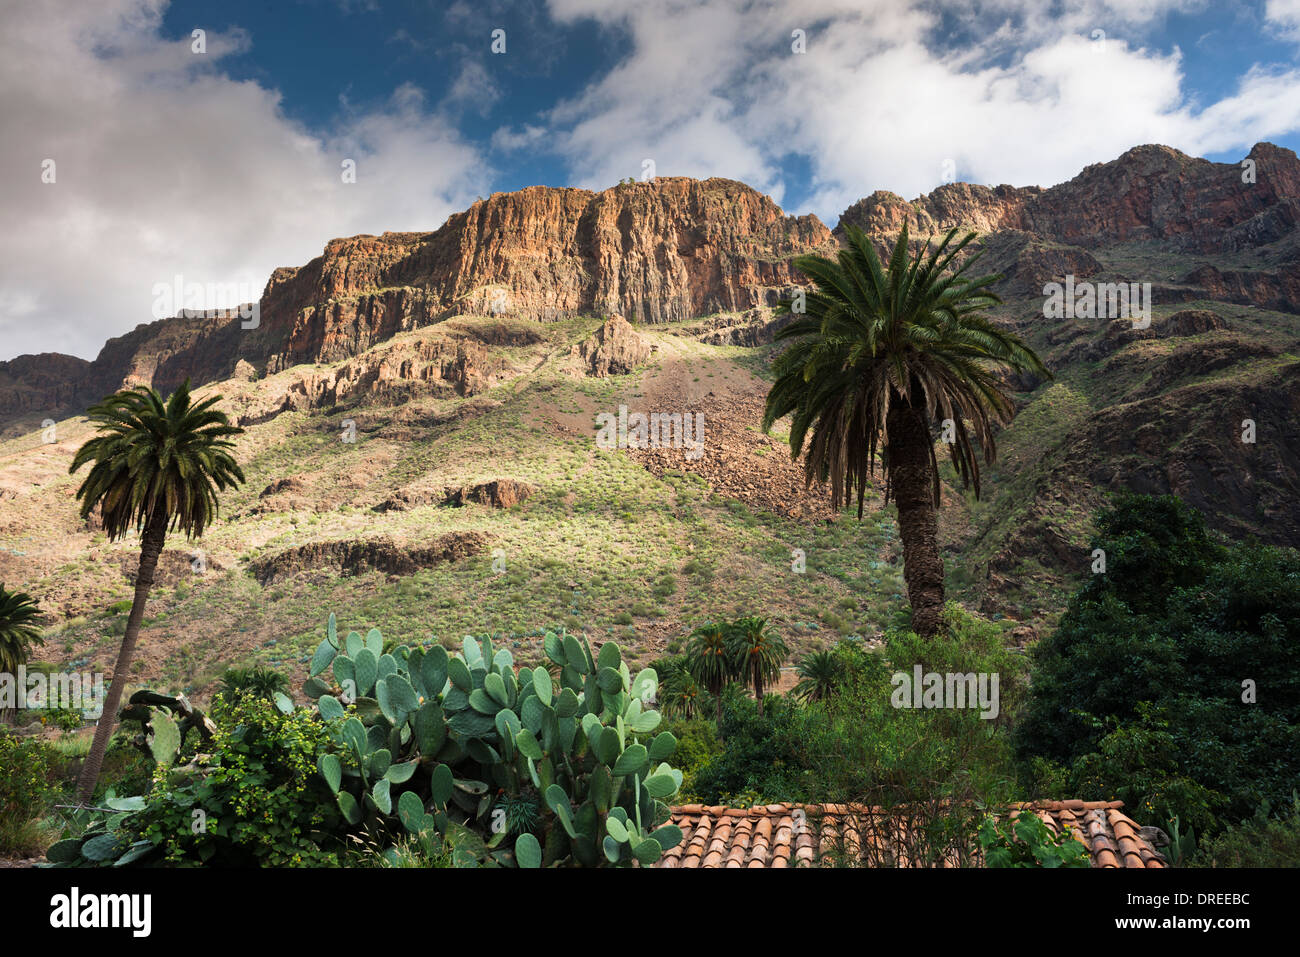 The village of Arteara in the steep-sided Barranco de Fataga, walled by a thick sequence of trachyte and phonolite Stock Photo